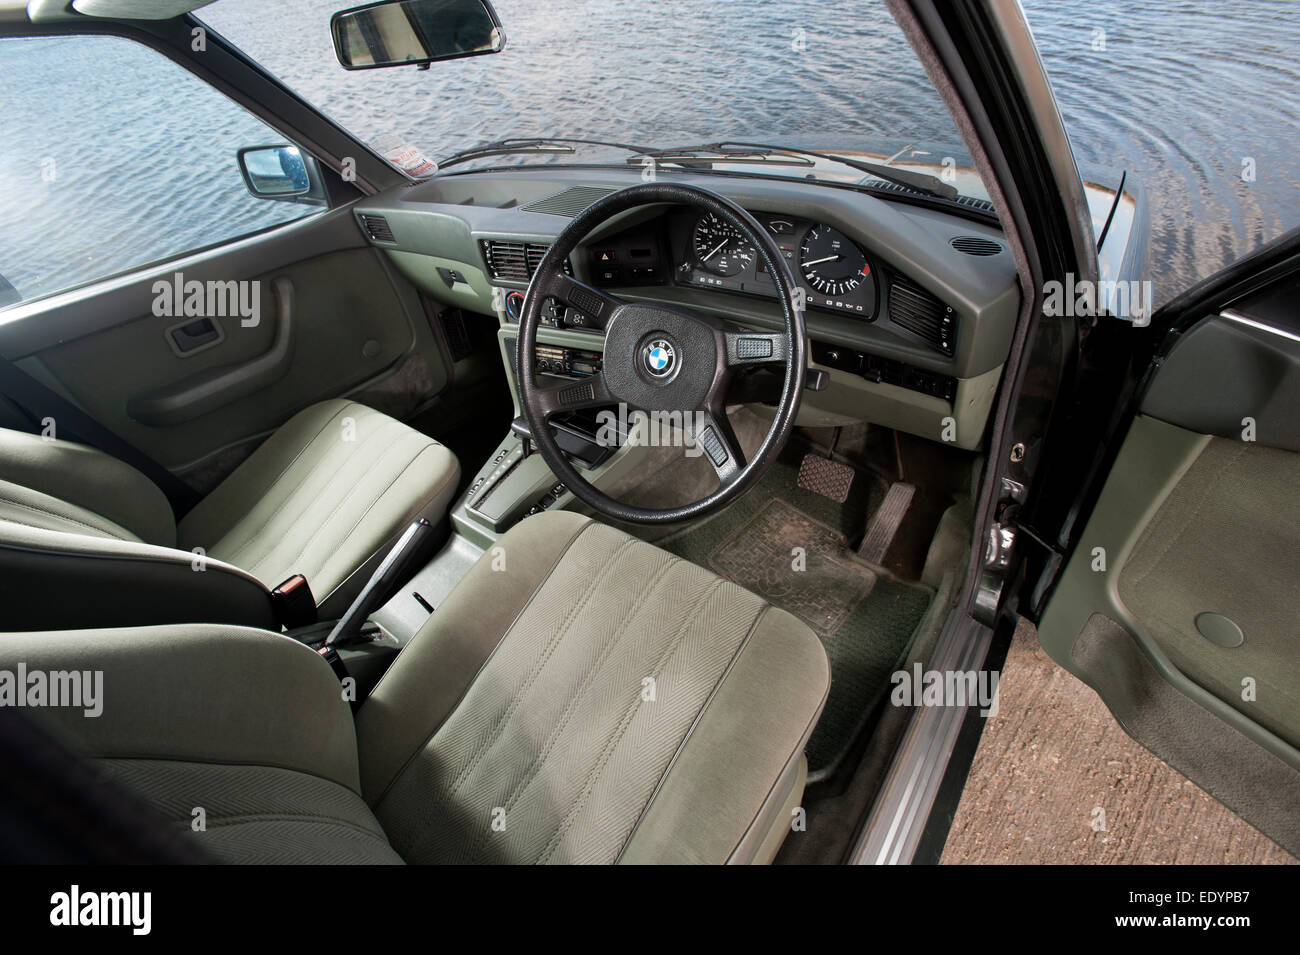 1984 e28 bmw 525i 5 series car interior stock photo 77442267 alamy. Black Bedroom Furniture Sets. Home Design Ideas